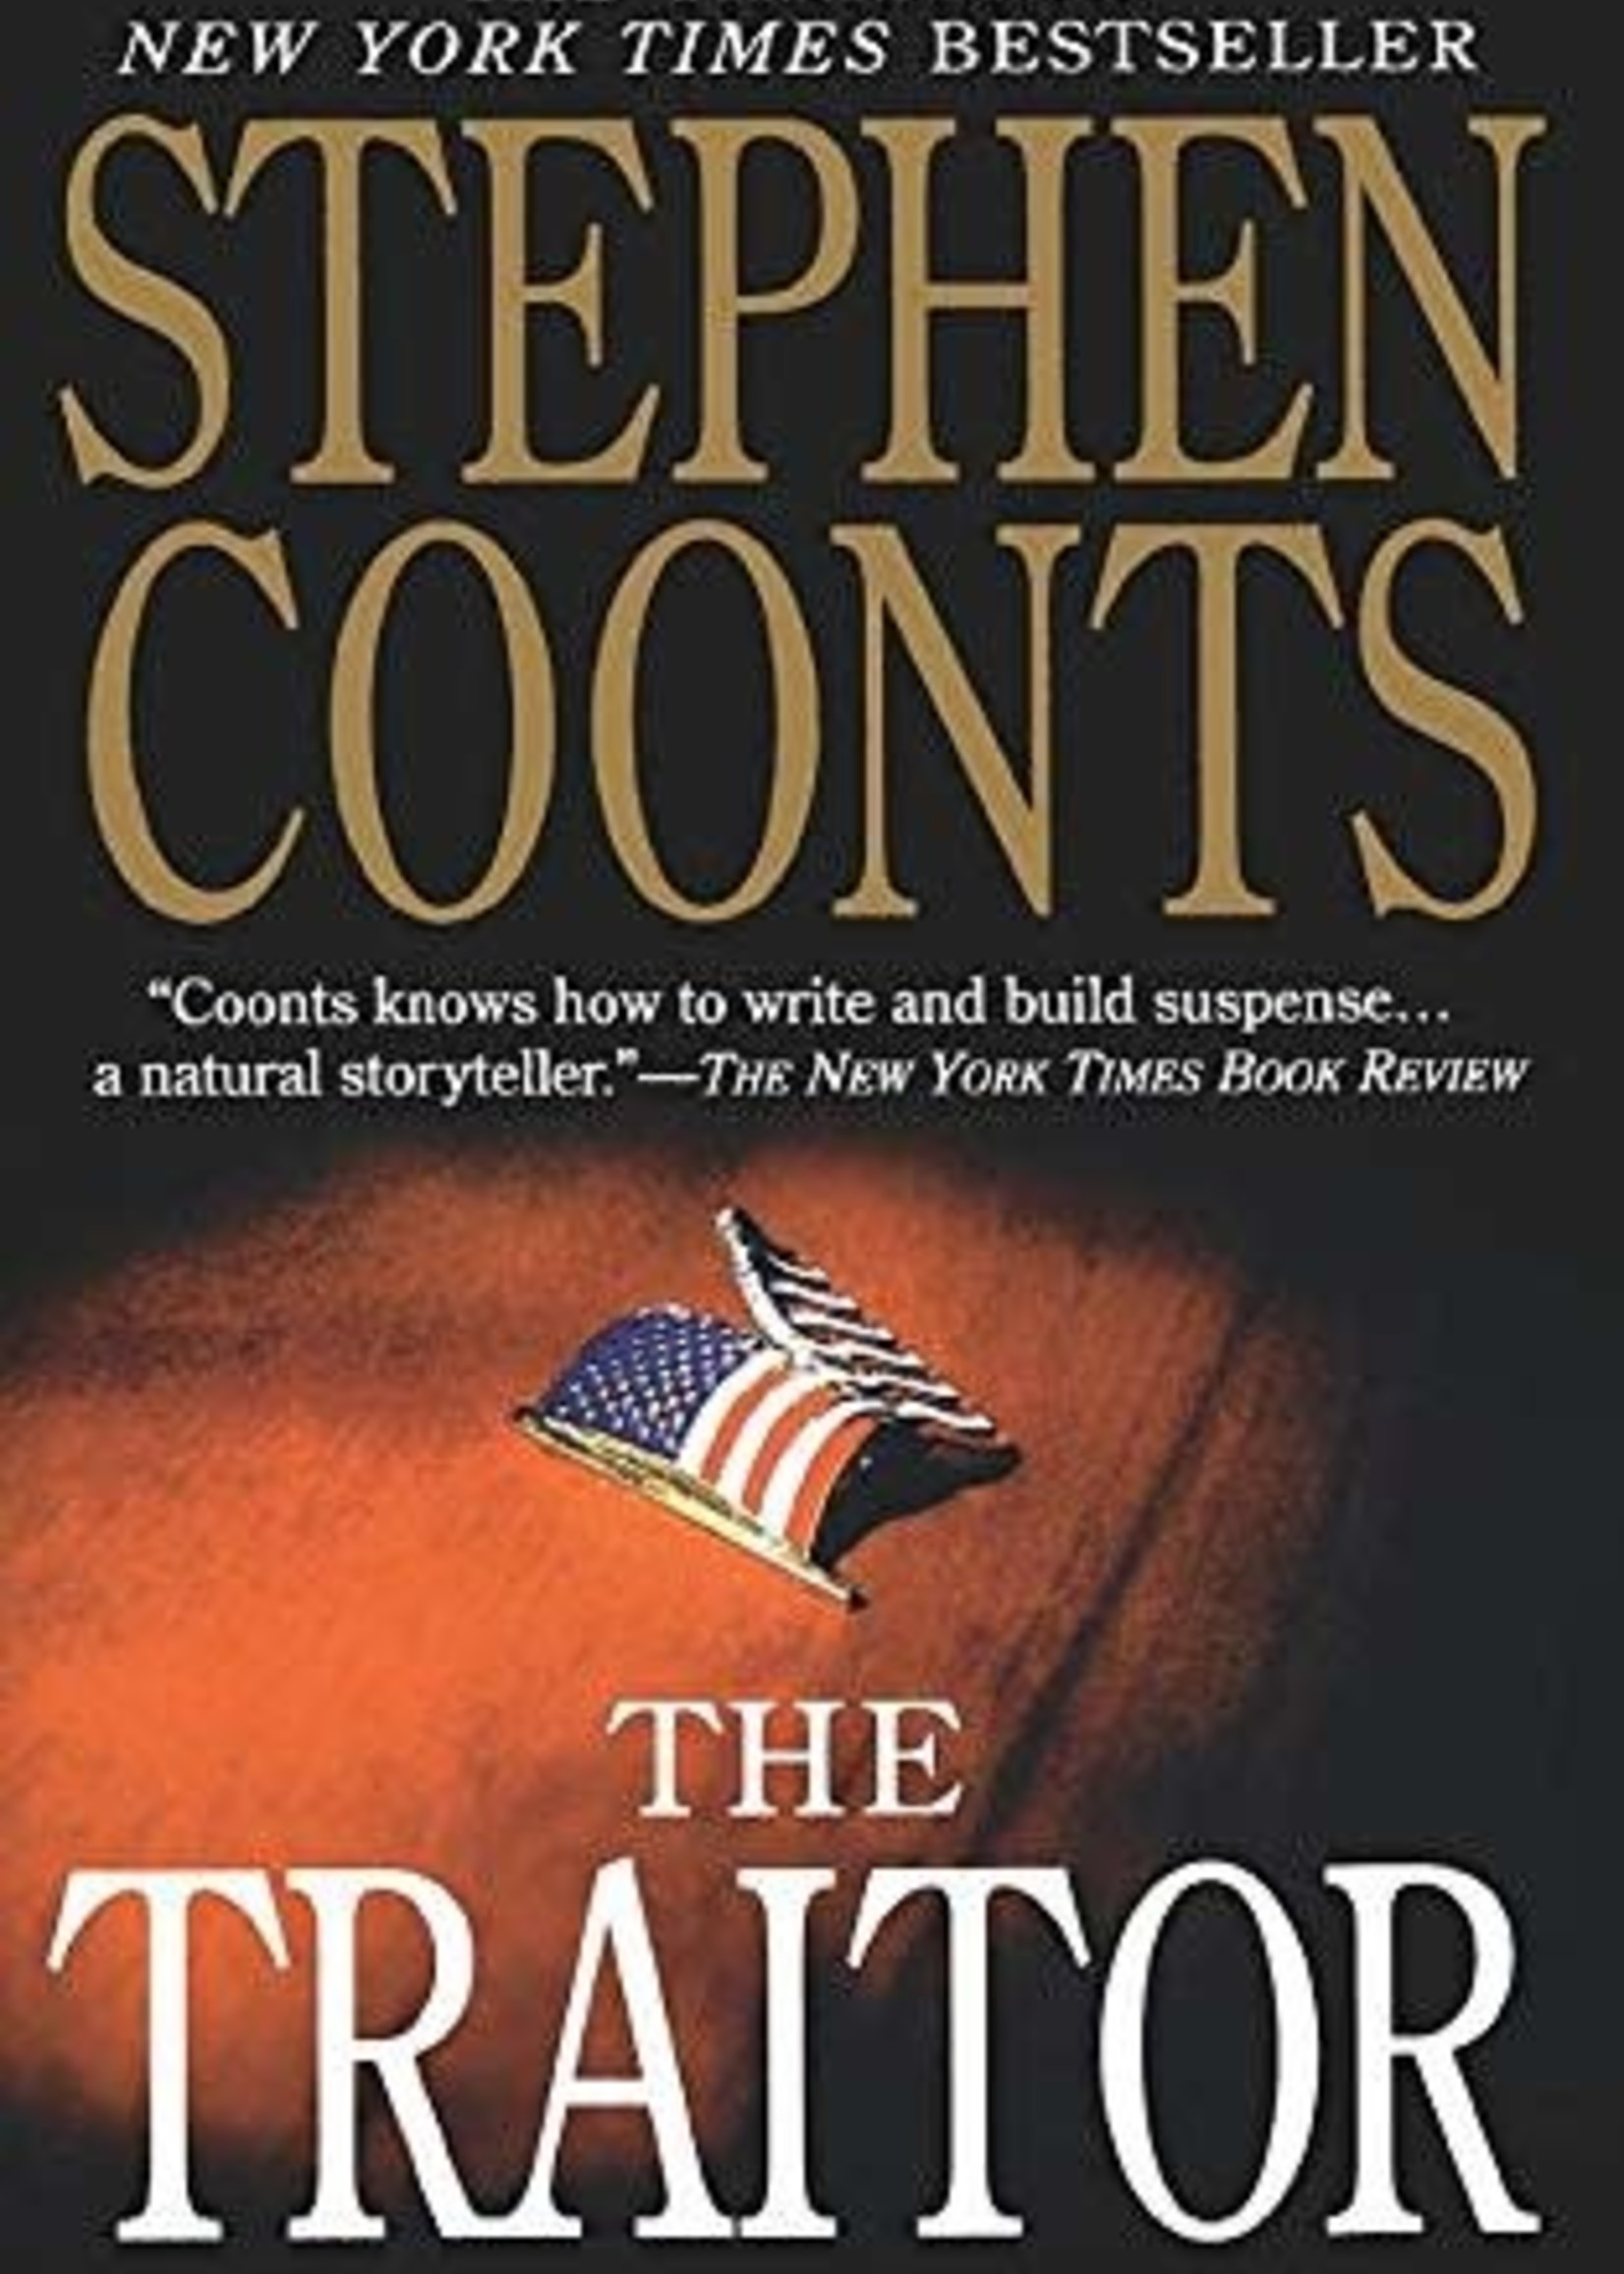 USED - The Traitor by Stephen Coonts